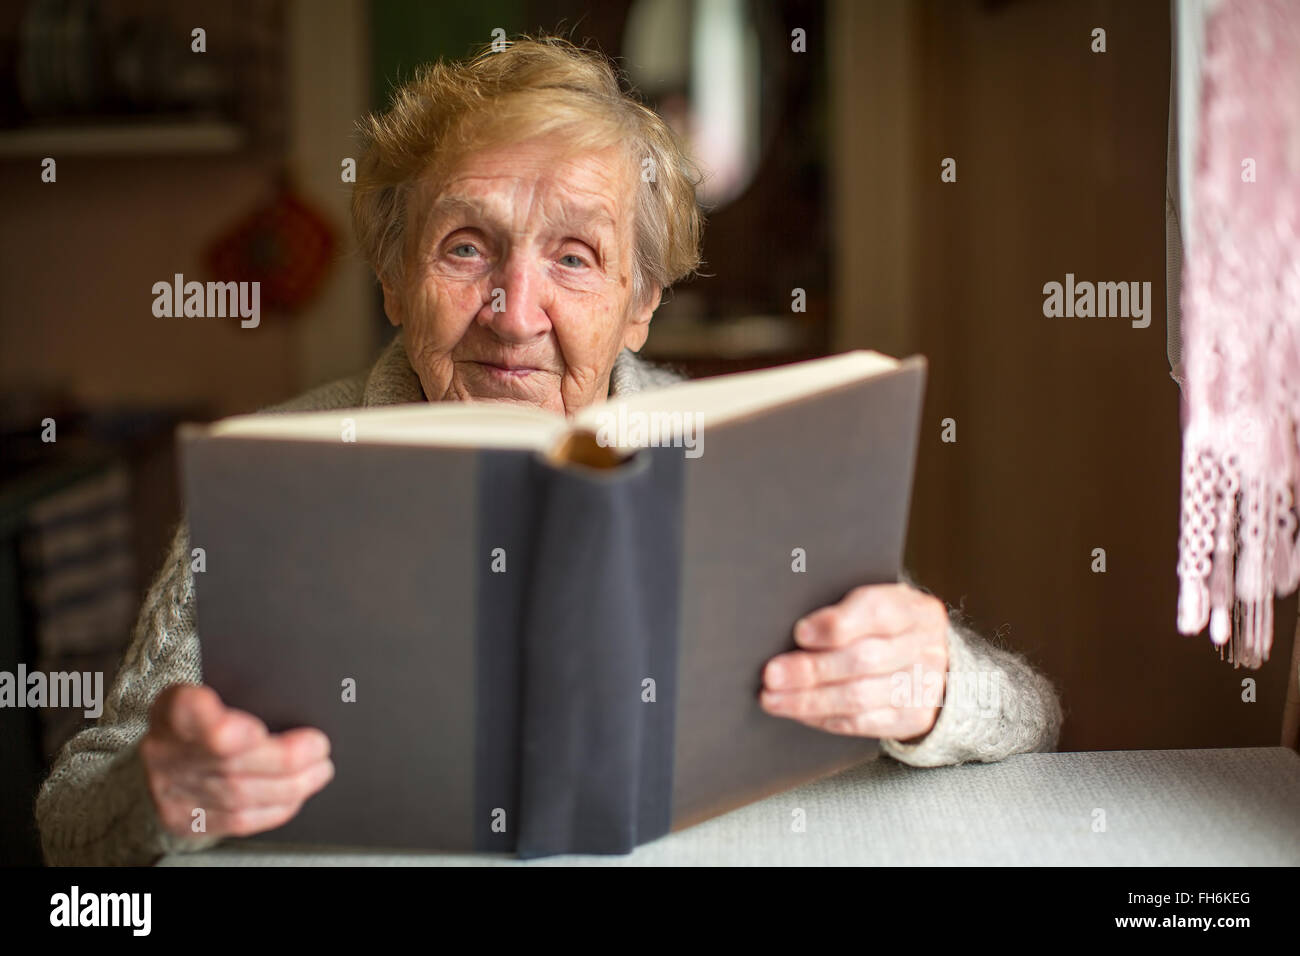 An elderly woman reading a large book. - Stock Image